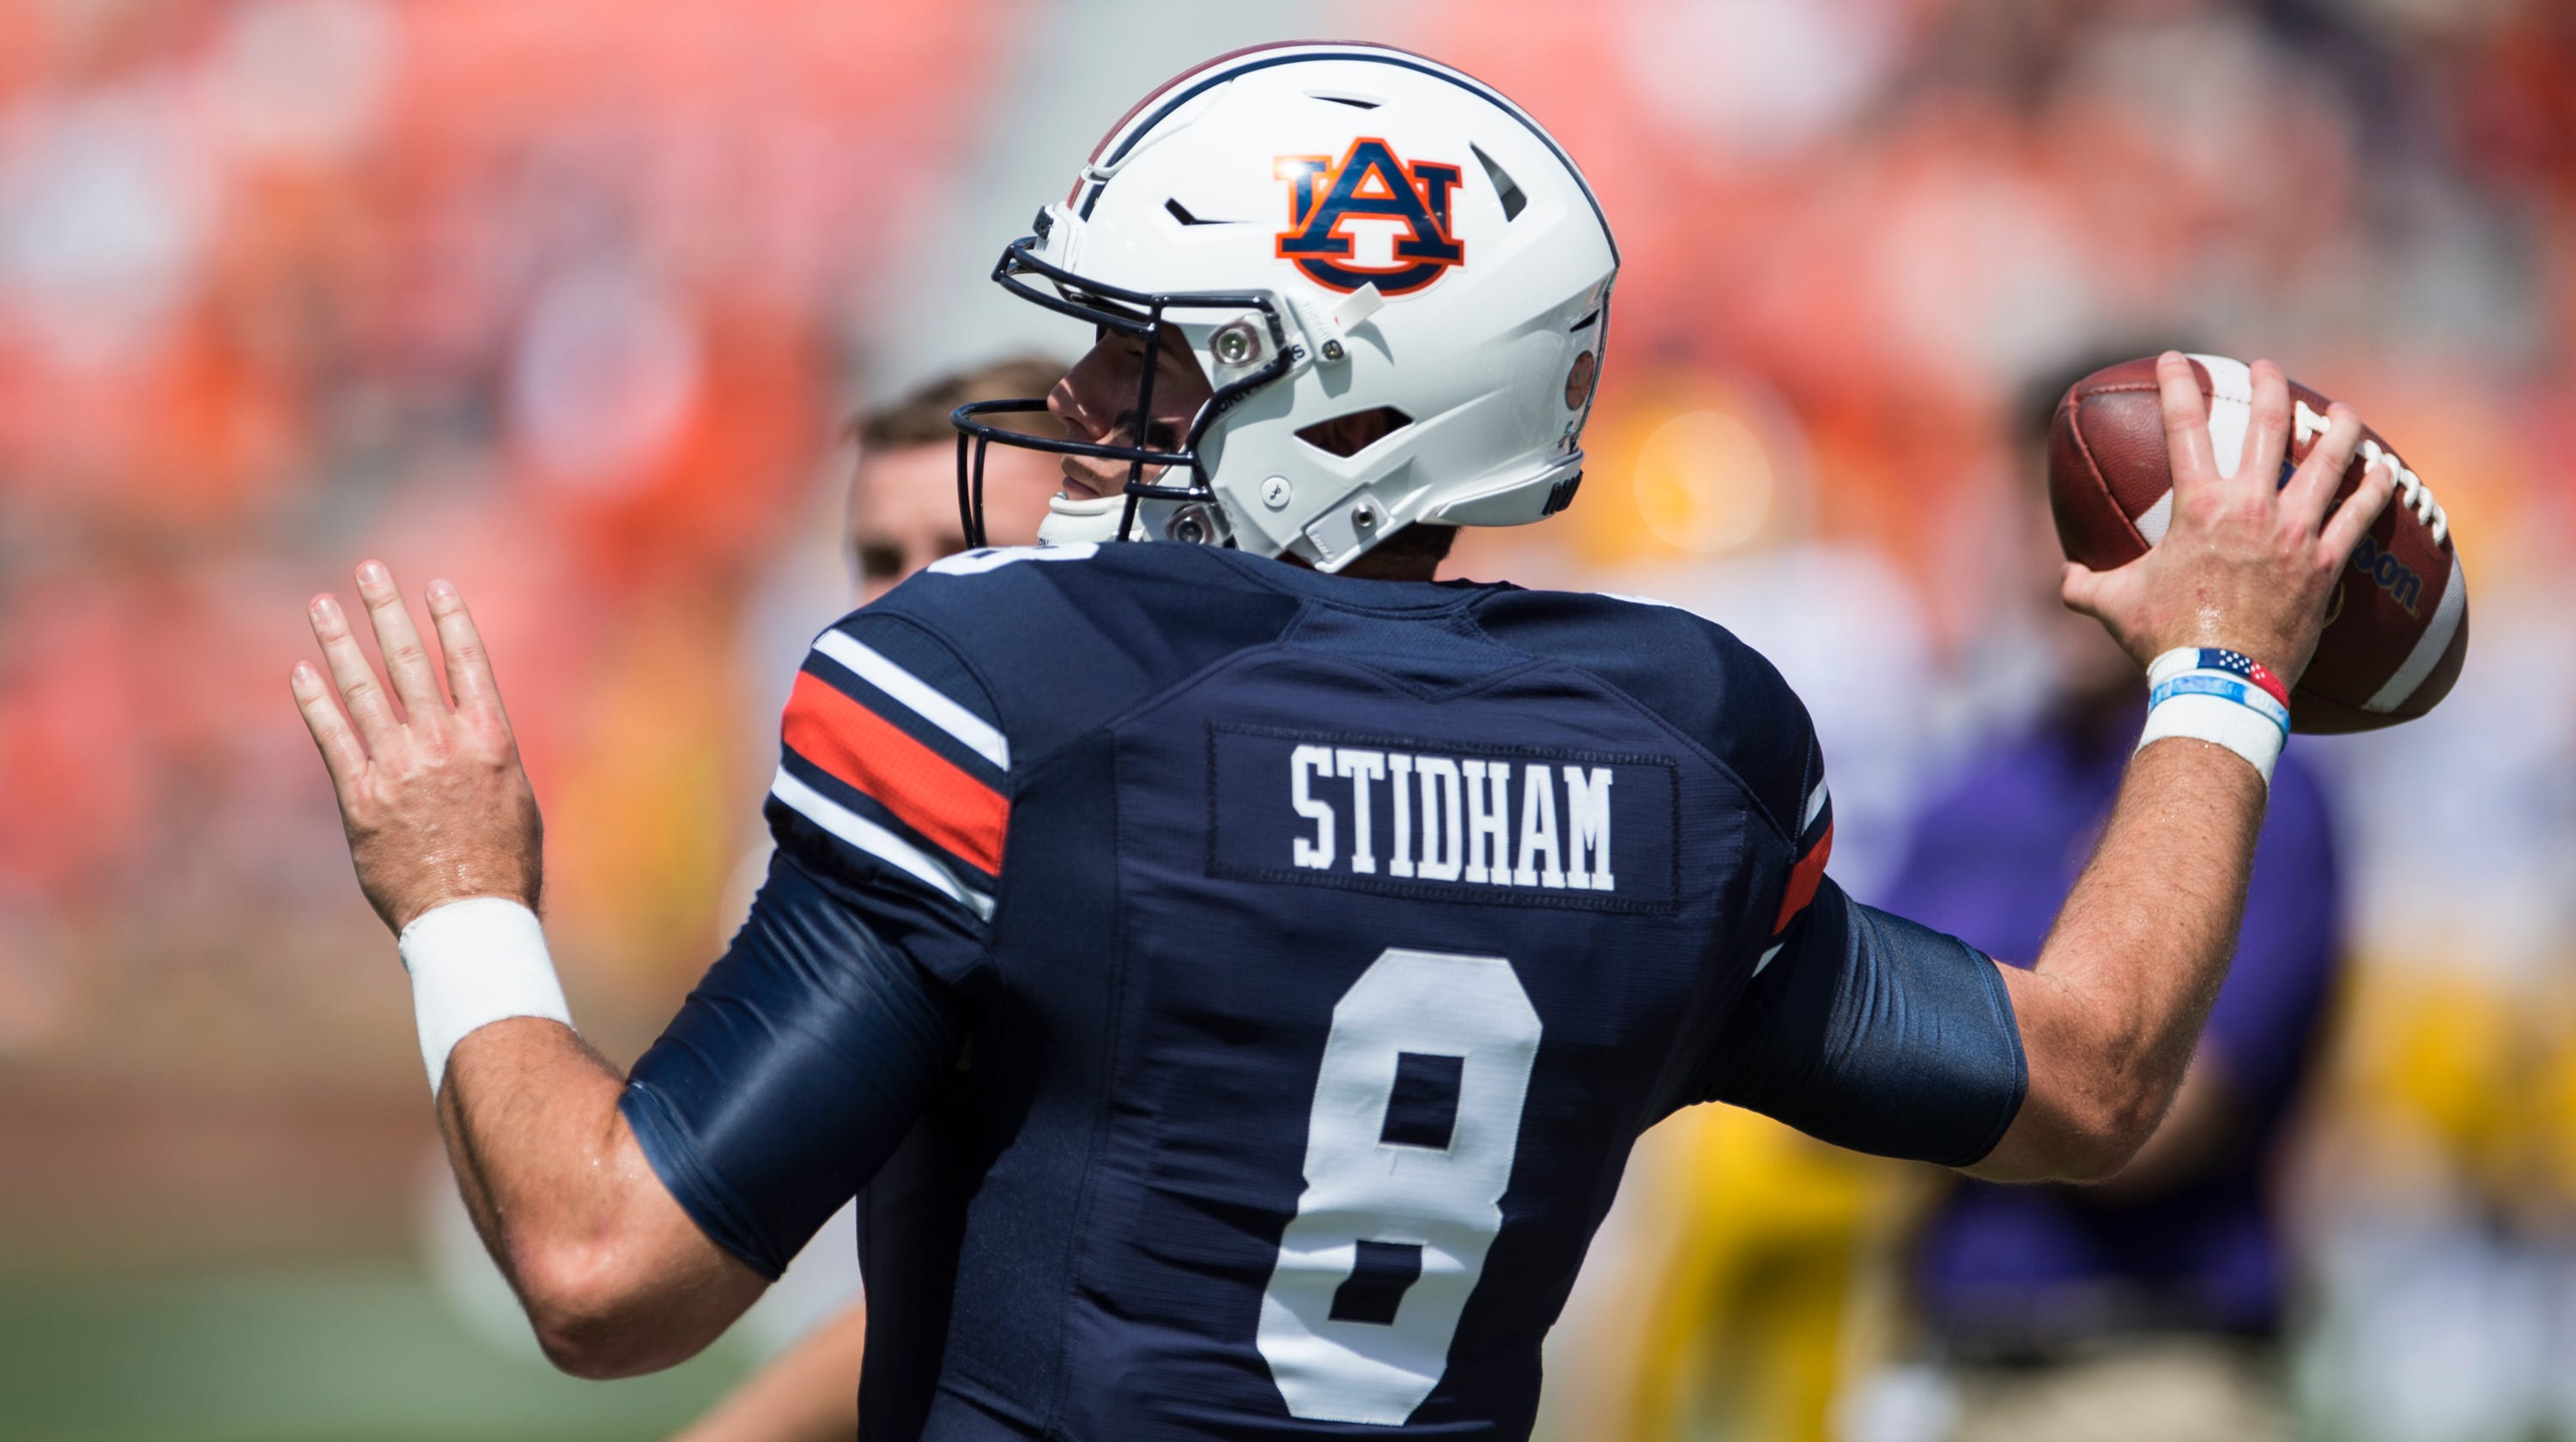 How to watch Auburn-Arkansas football: What is the game ...